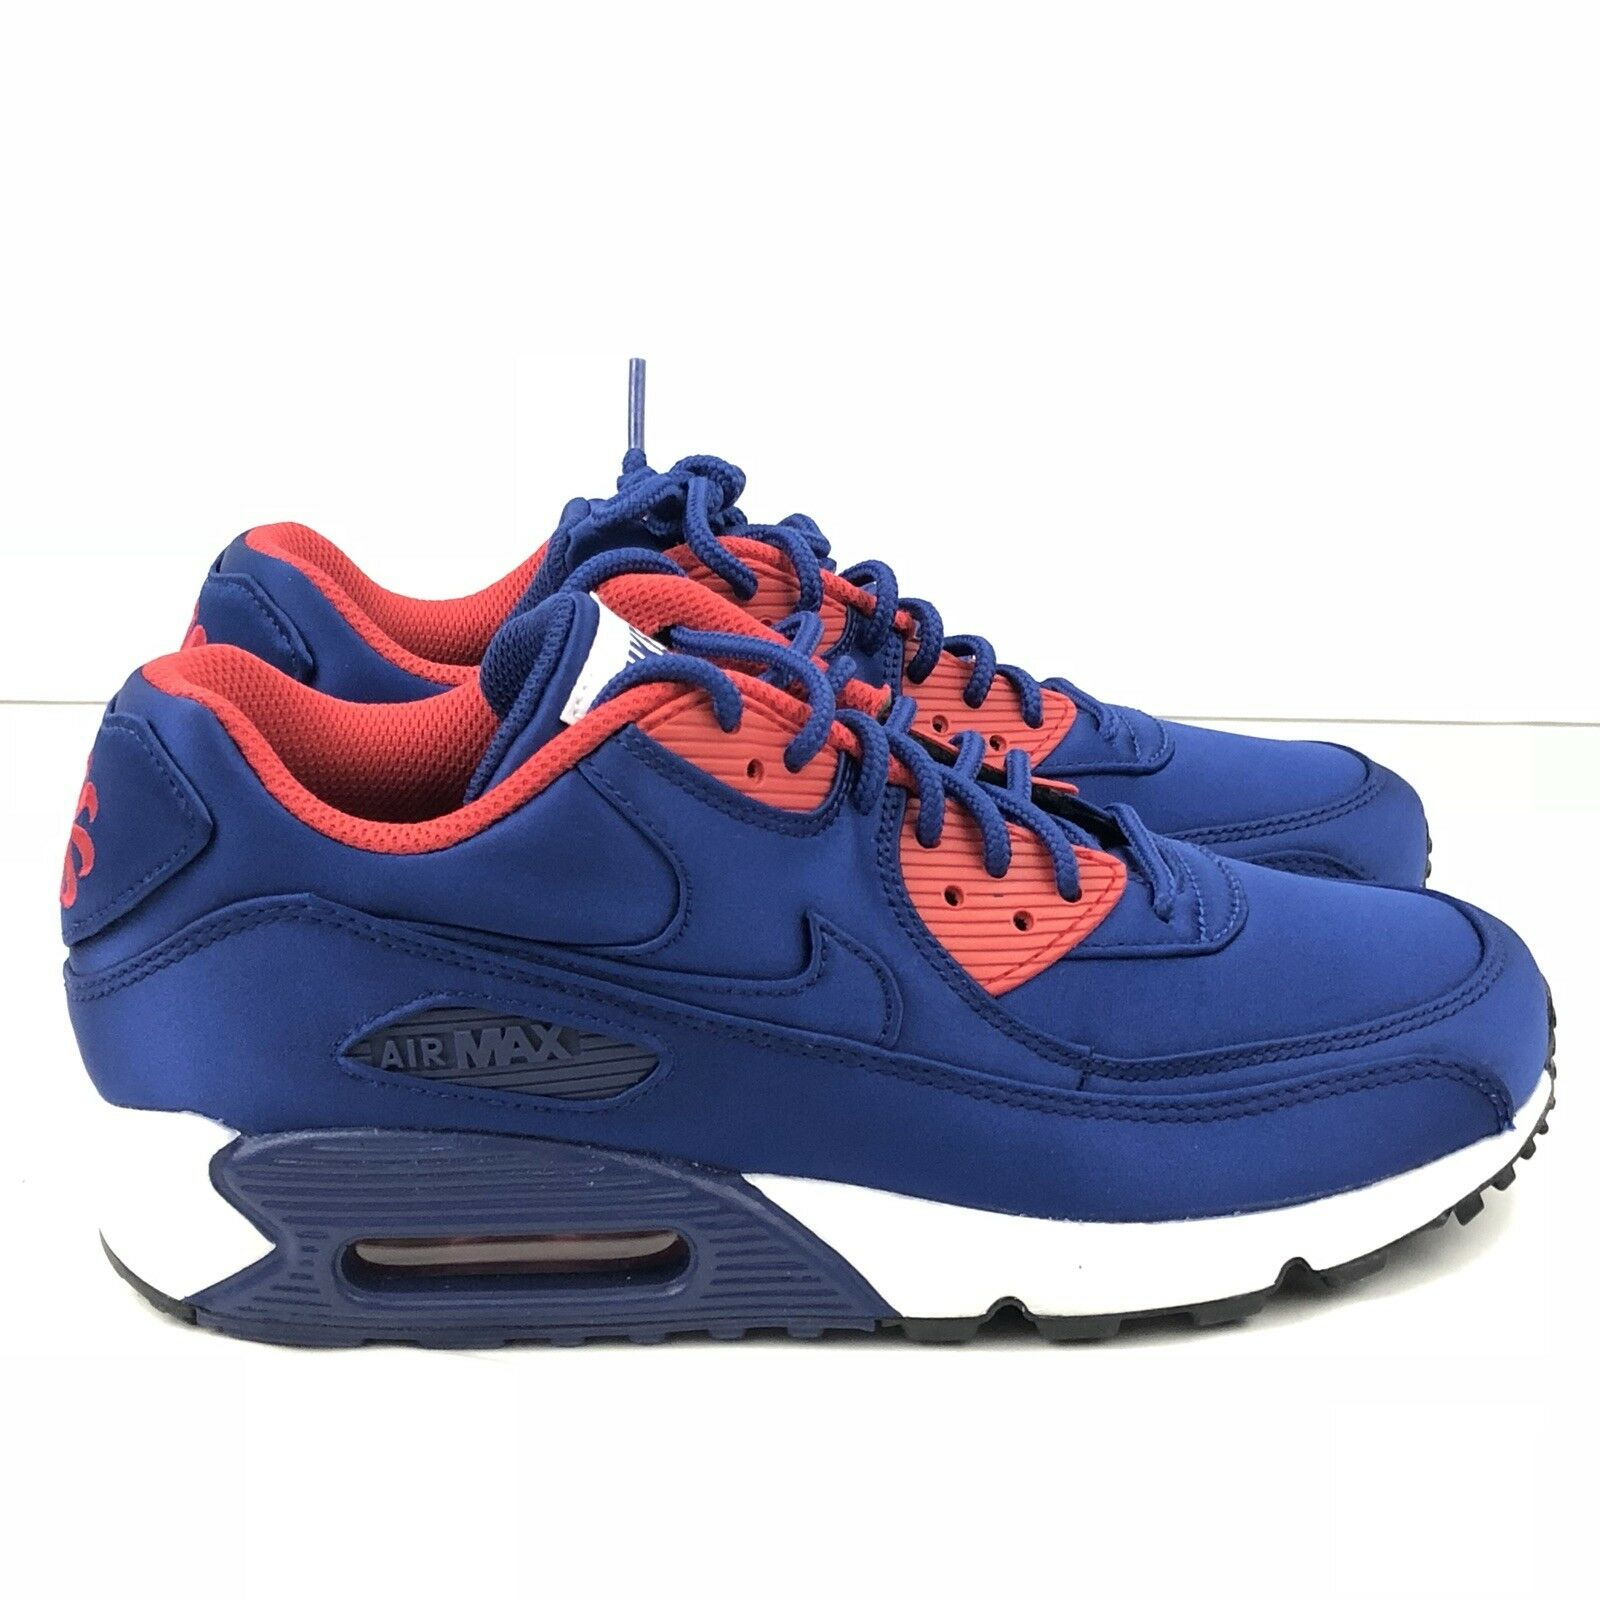 Nike Air Max 90 SE Satin Deep Royal bluee Athletic Fashion AO1063 400 SZ 8.5